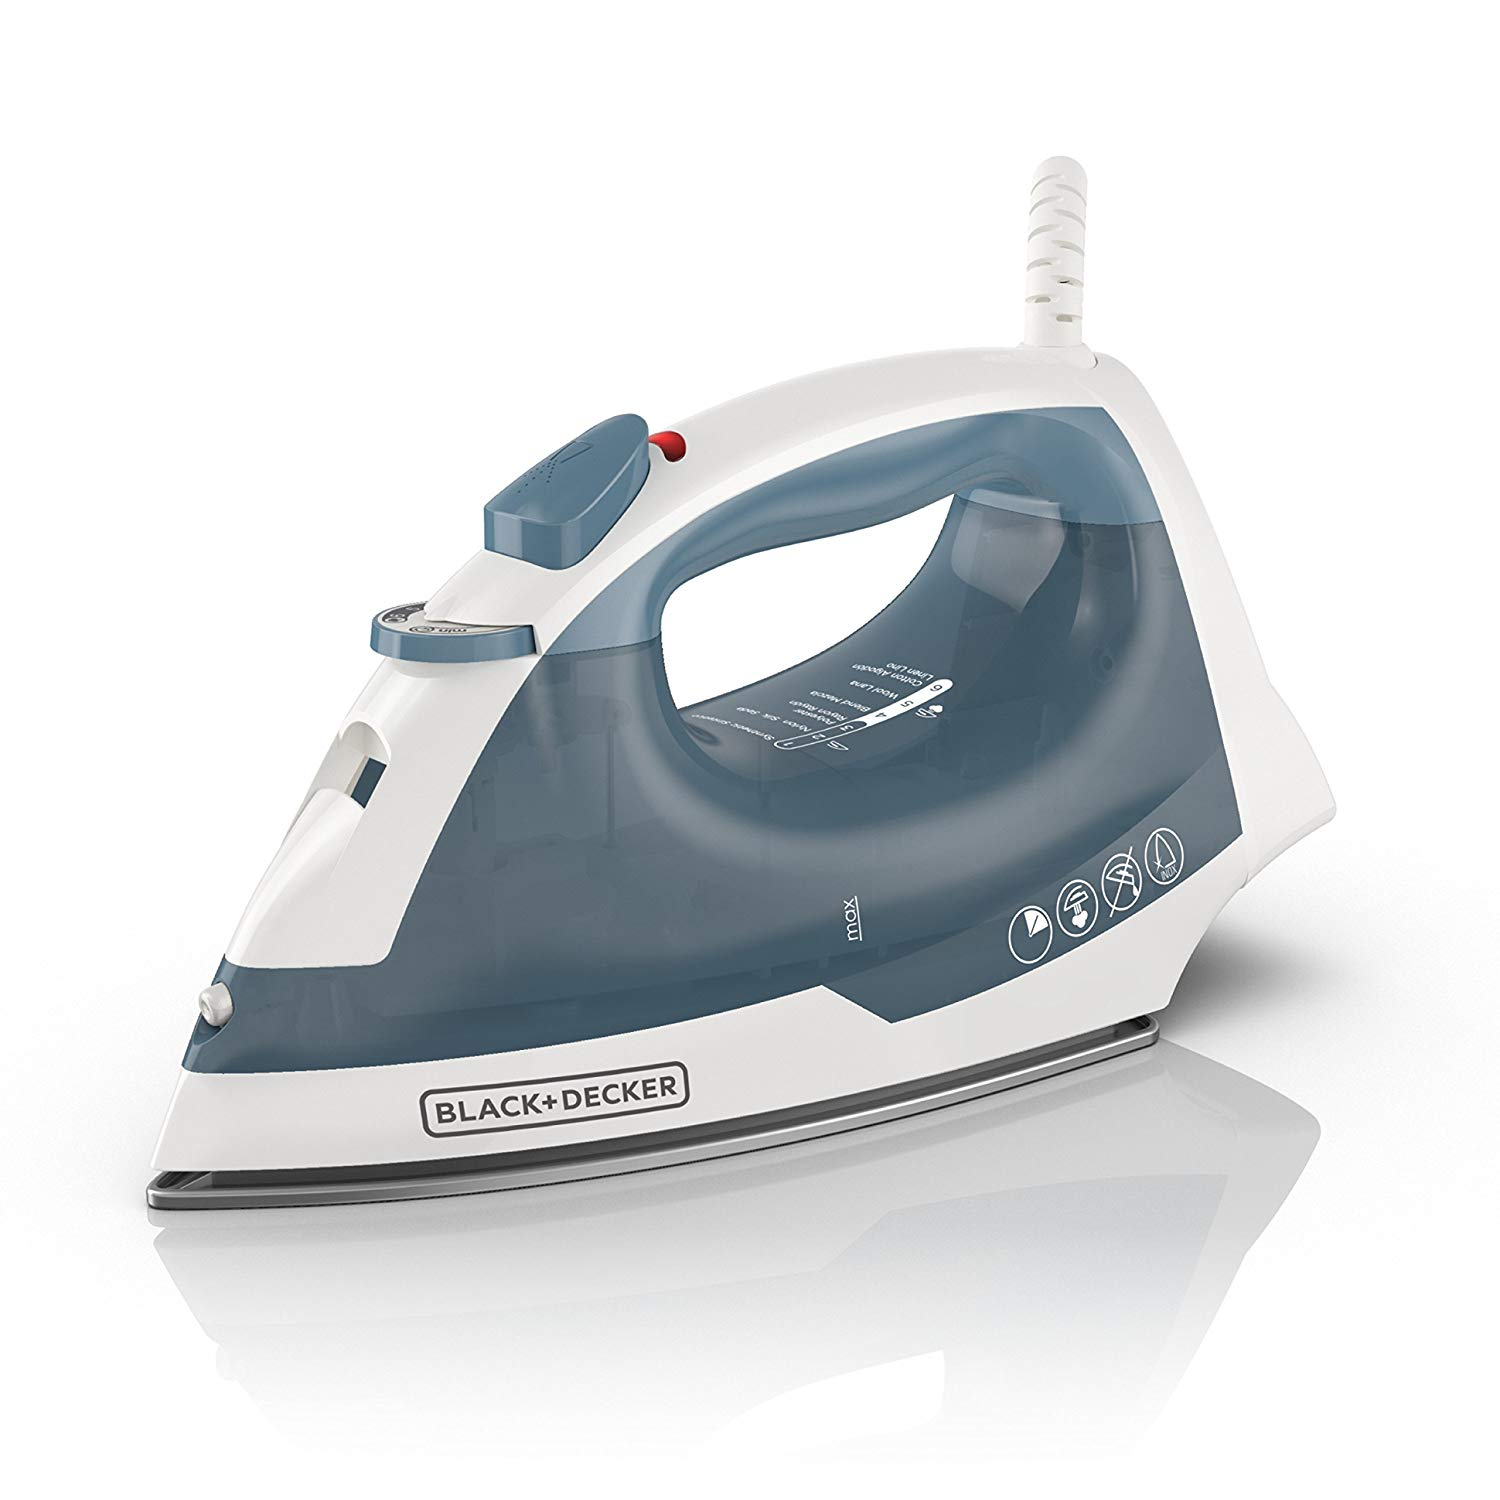 BLACK+DECKER Easy Steam Compact Iron, IR40V